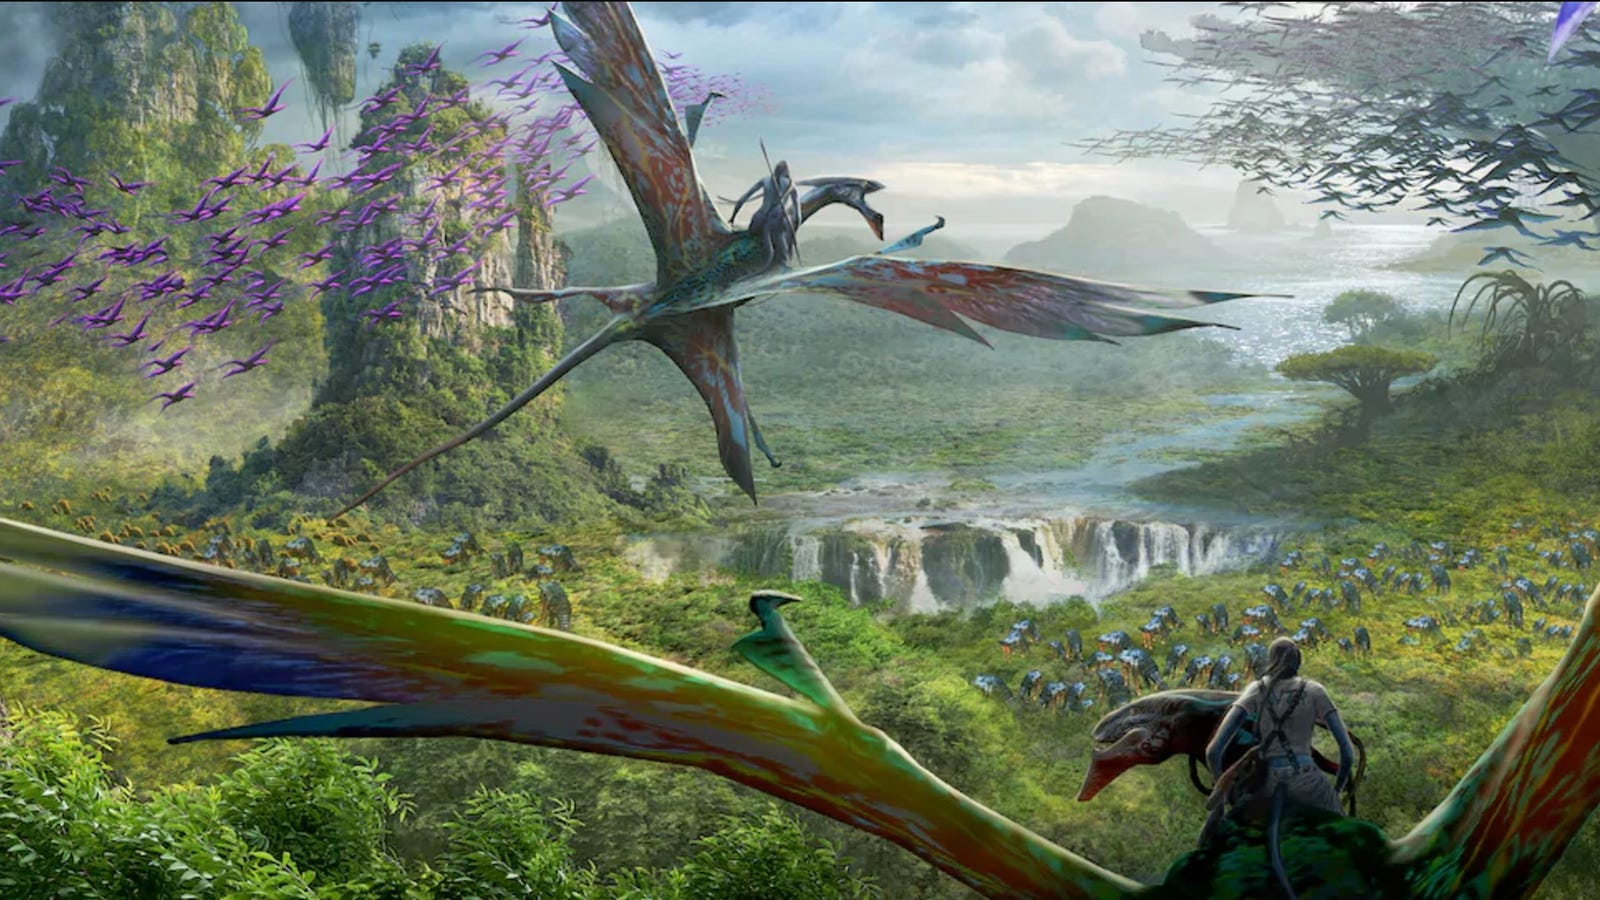 The New Avatar Theme Park Is a Giant Spoiler